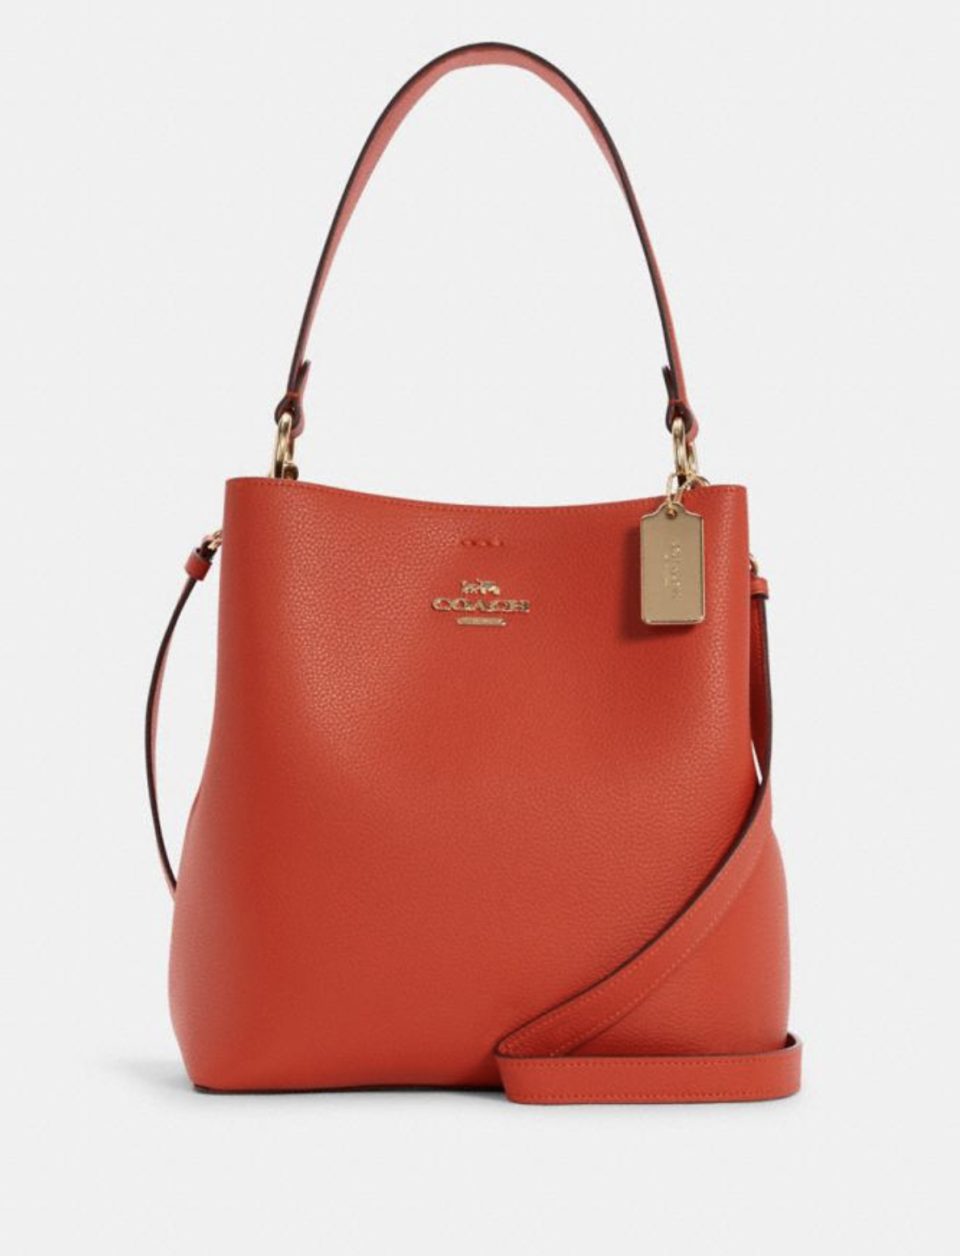 Town Bucket Bag in Mango/Wine (Photo via Coach Outlet)